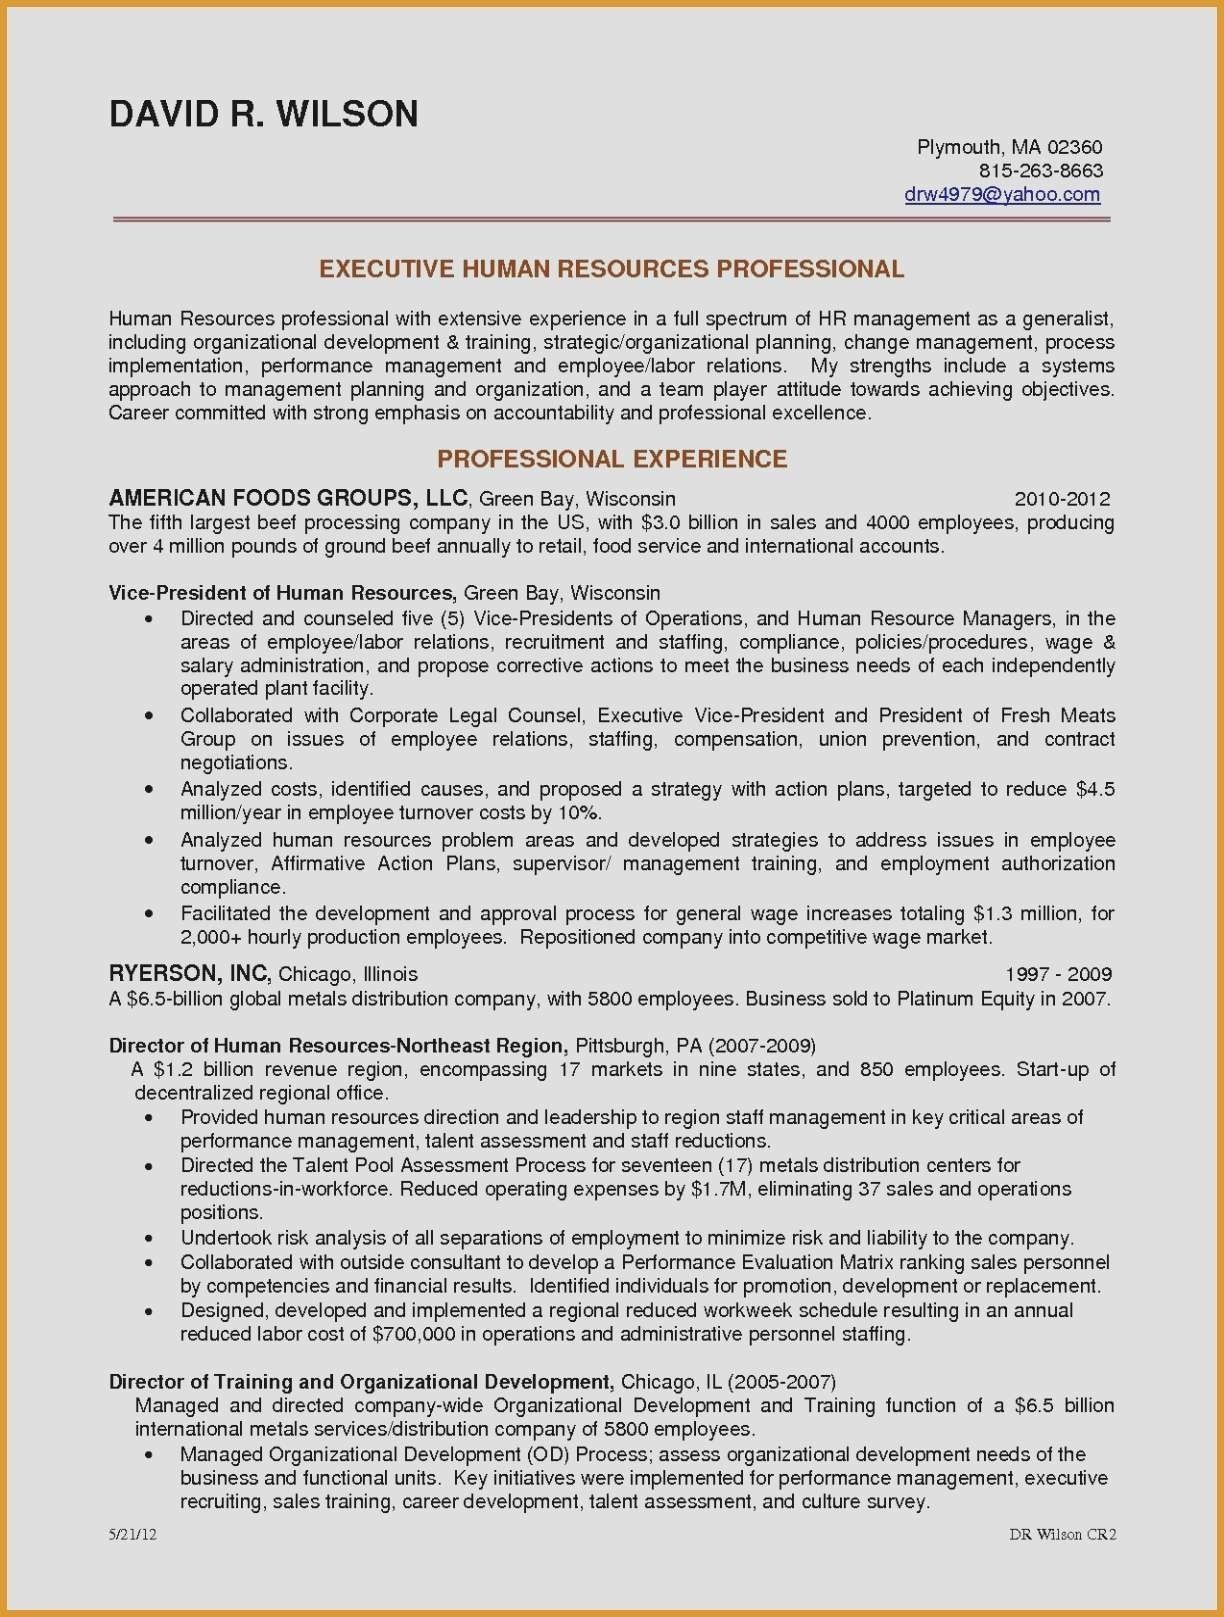 easy hr jobs chicago entry level sample functional resume human resources generalist Resume Sample Functional Resume Human Resources Generalist